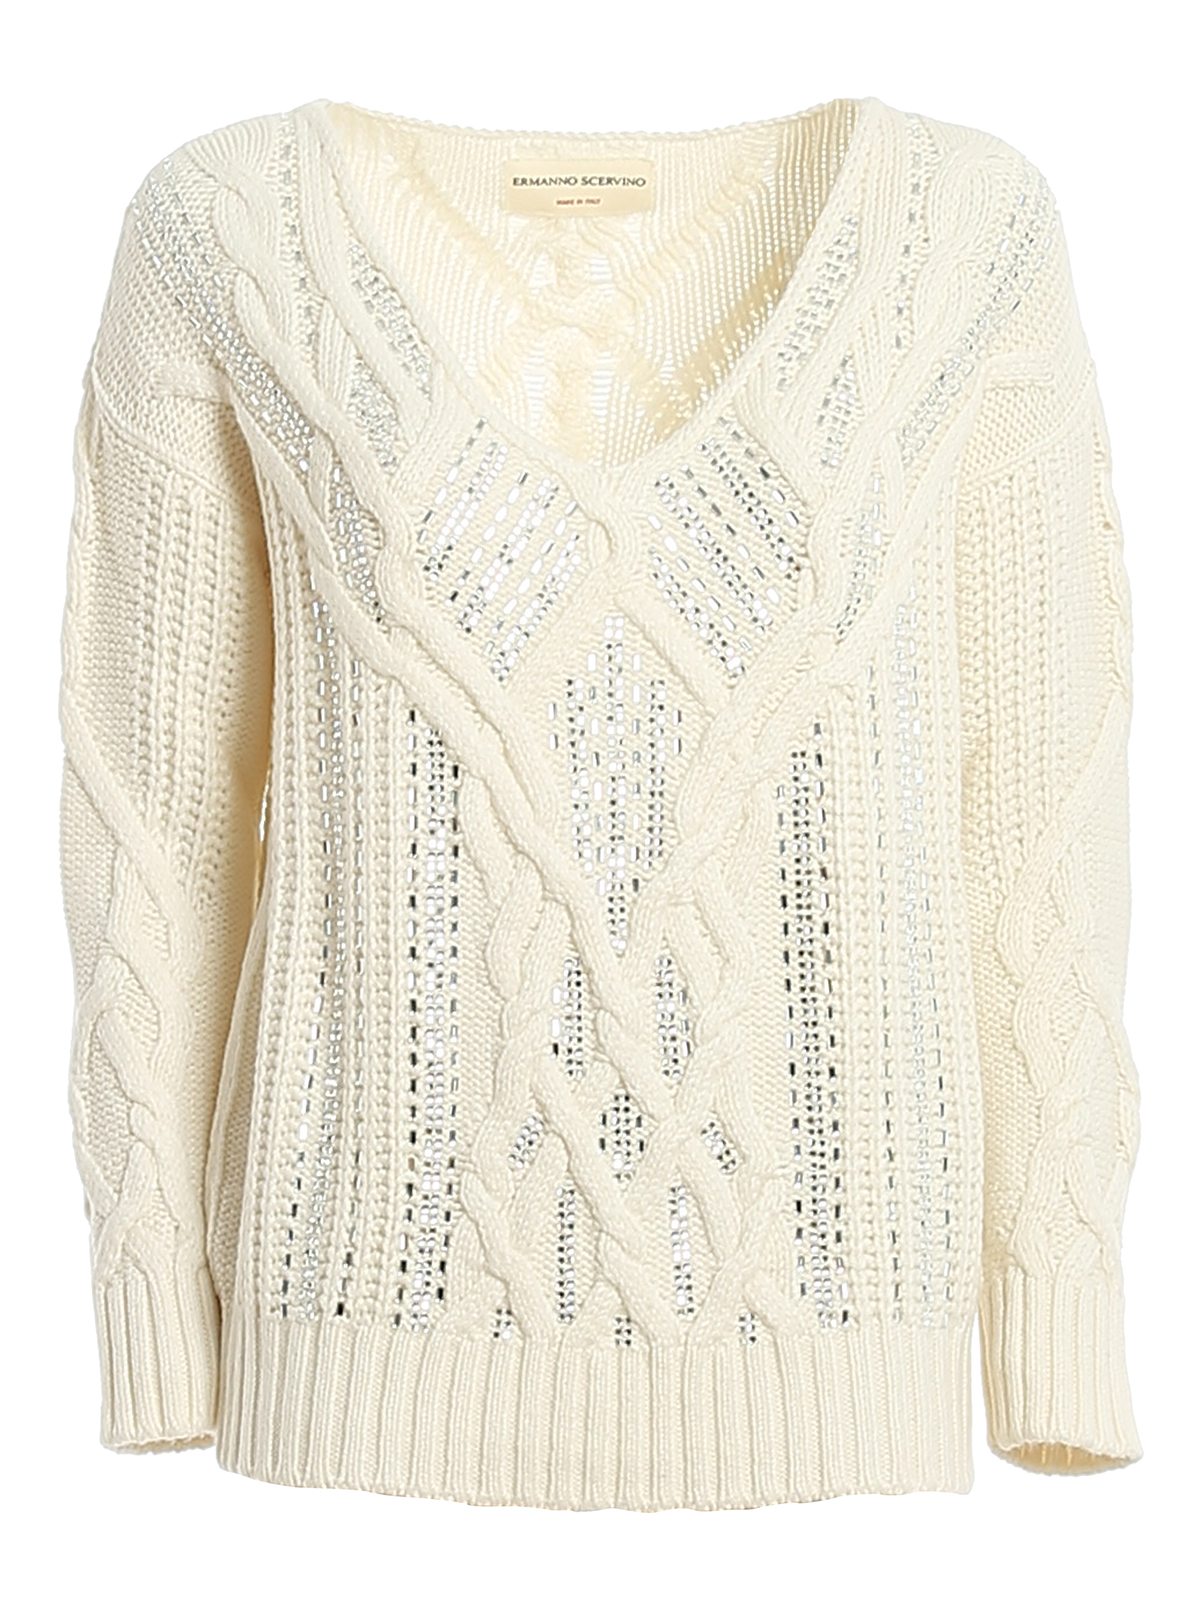 Ermanno Scervino EMBELLISHED V-NECK SWEATER